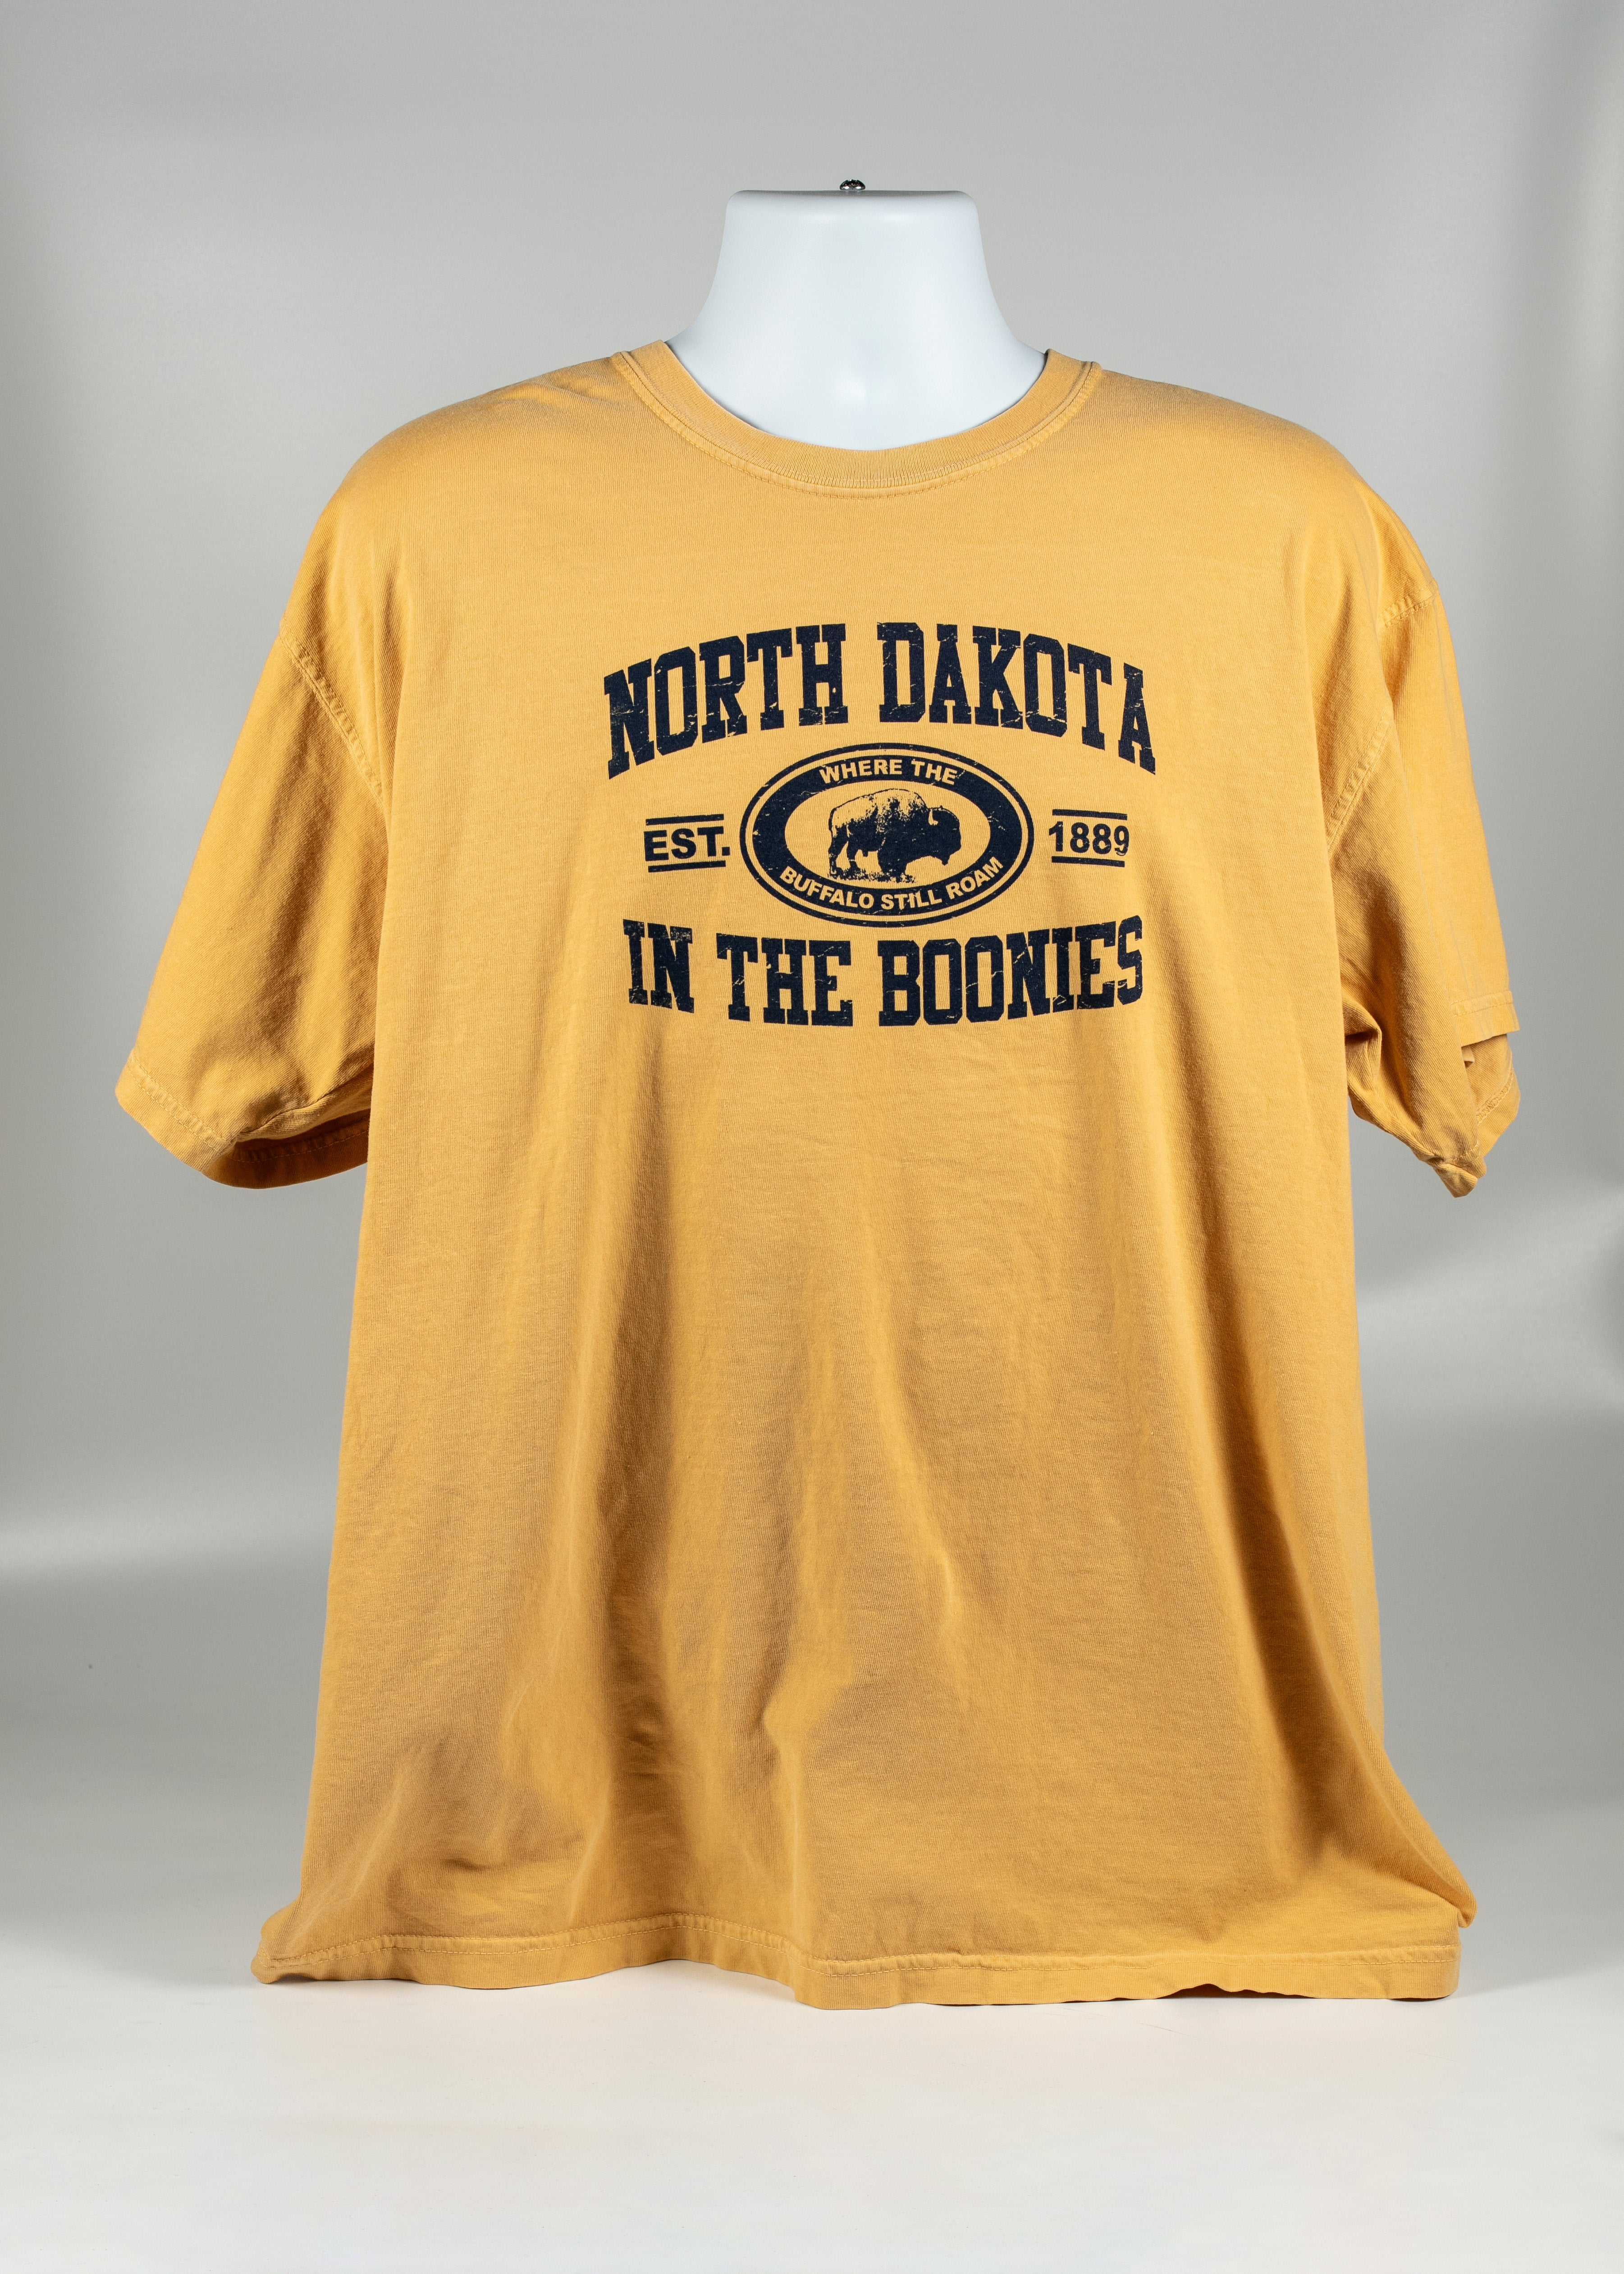 NORTH DAKOTA ADULT BOONIES TEE 100% COTTON